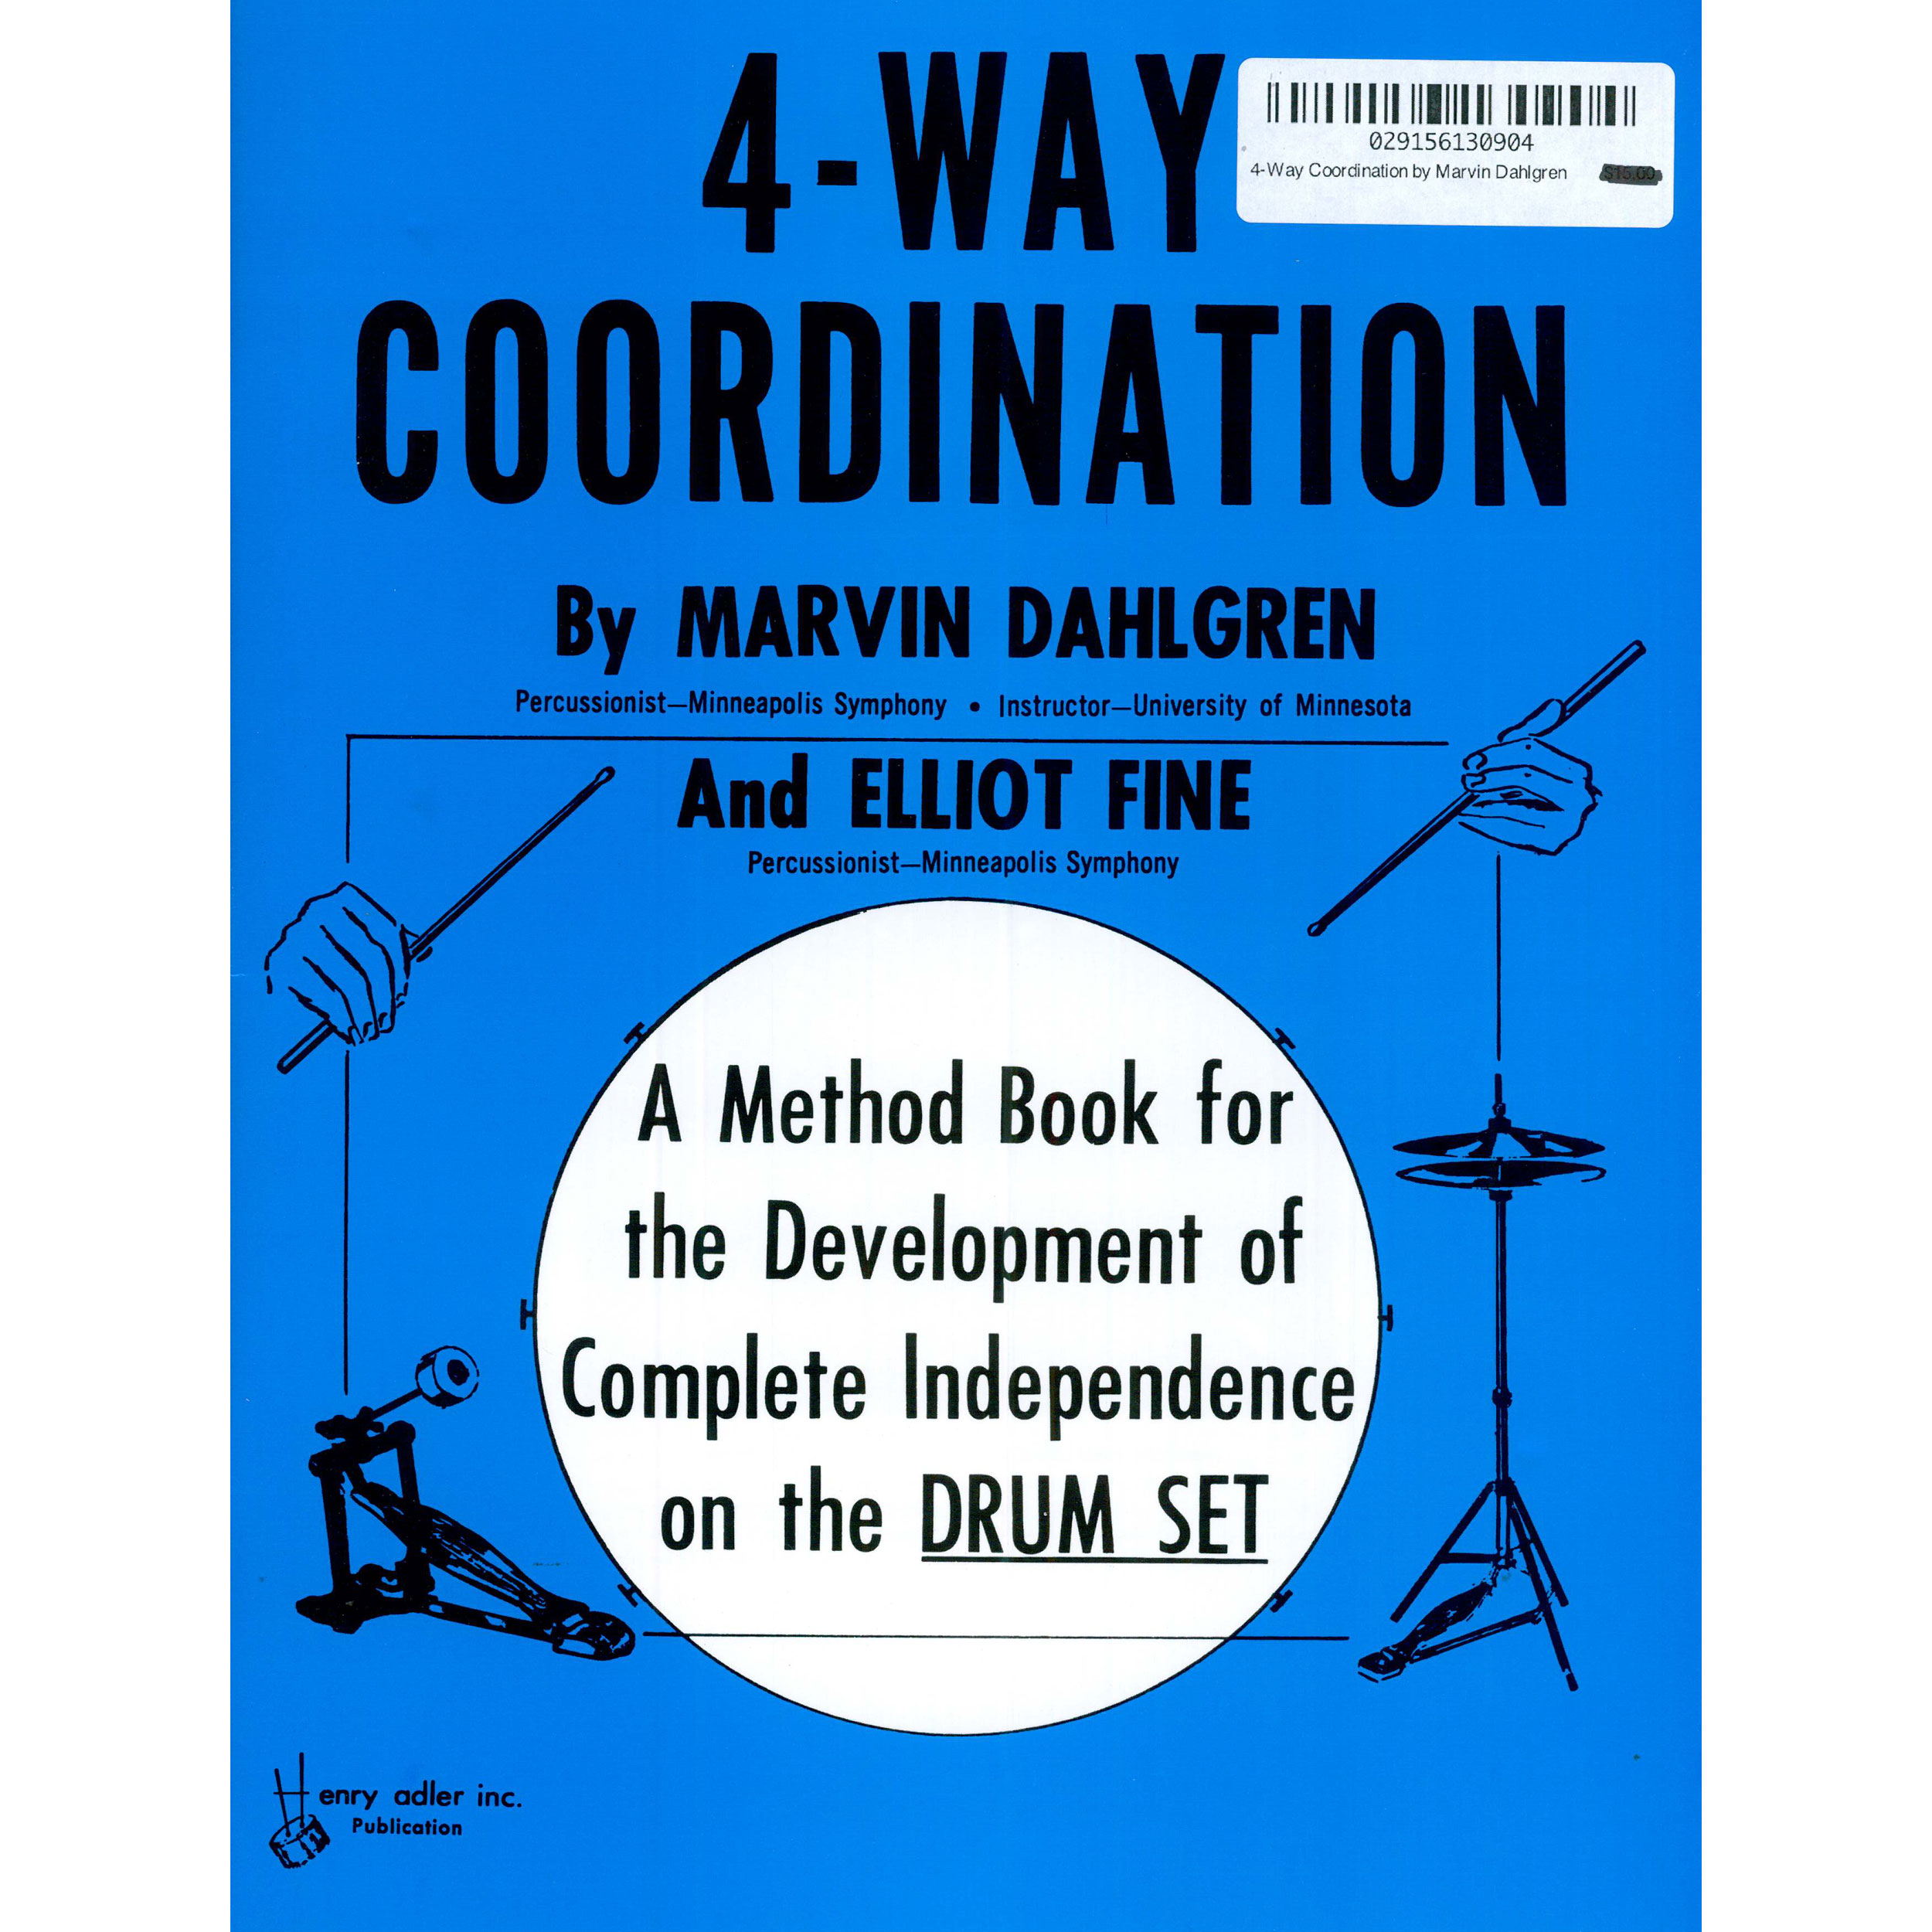 4-Way Coordination by Marvin Dahlgren